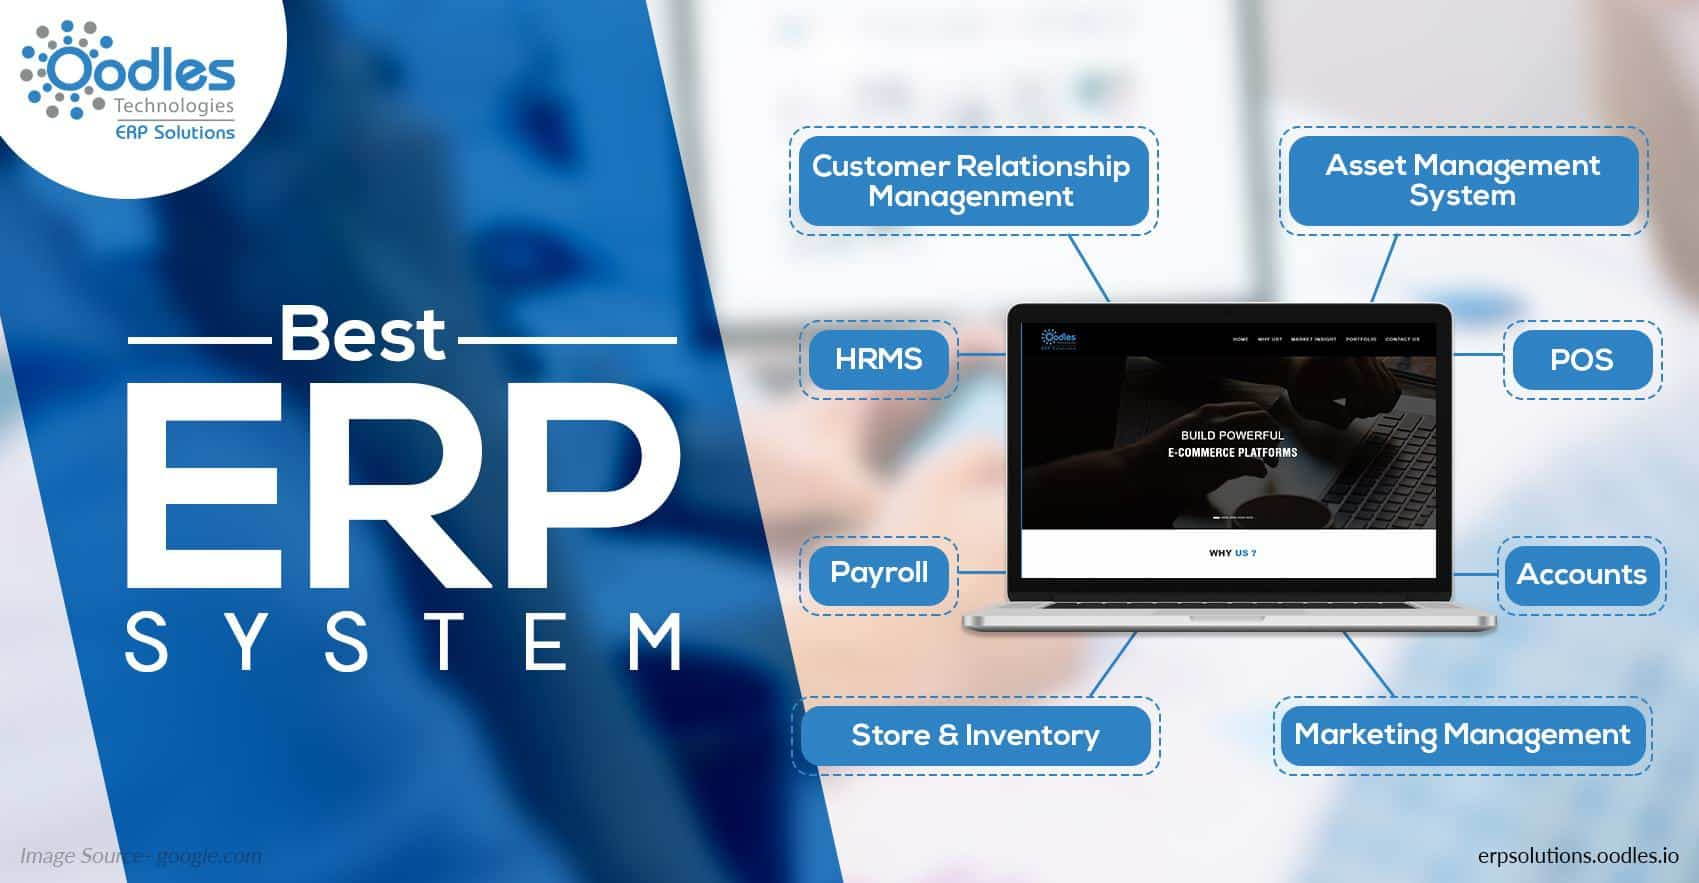 Top Capabilities To Look For Before Choosing An ERP System Solution